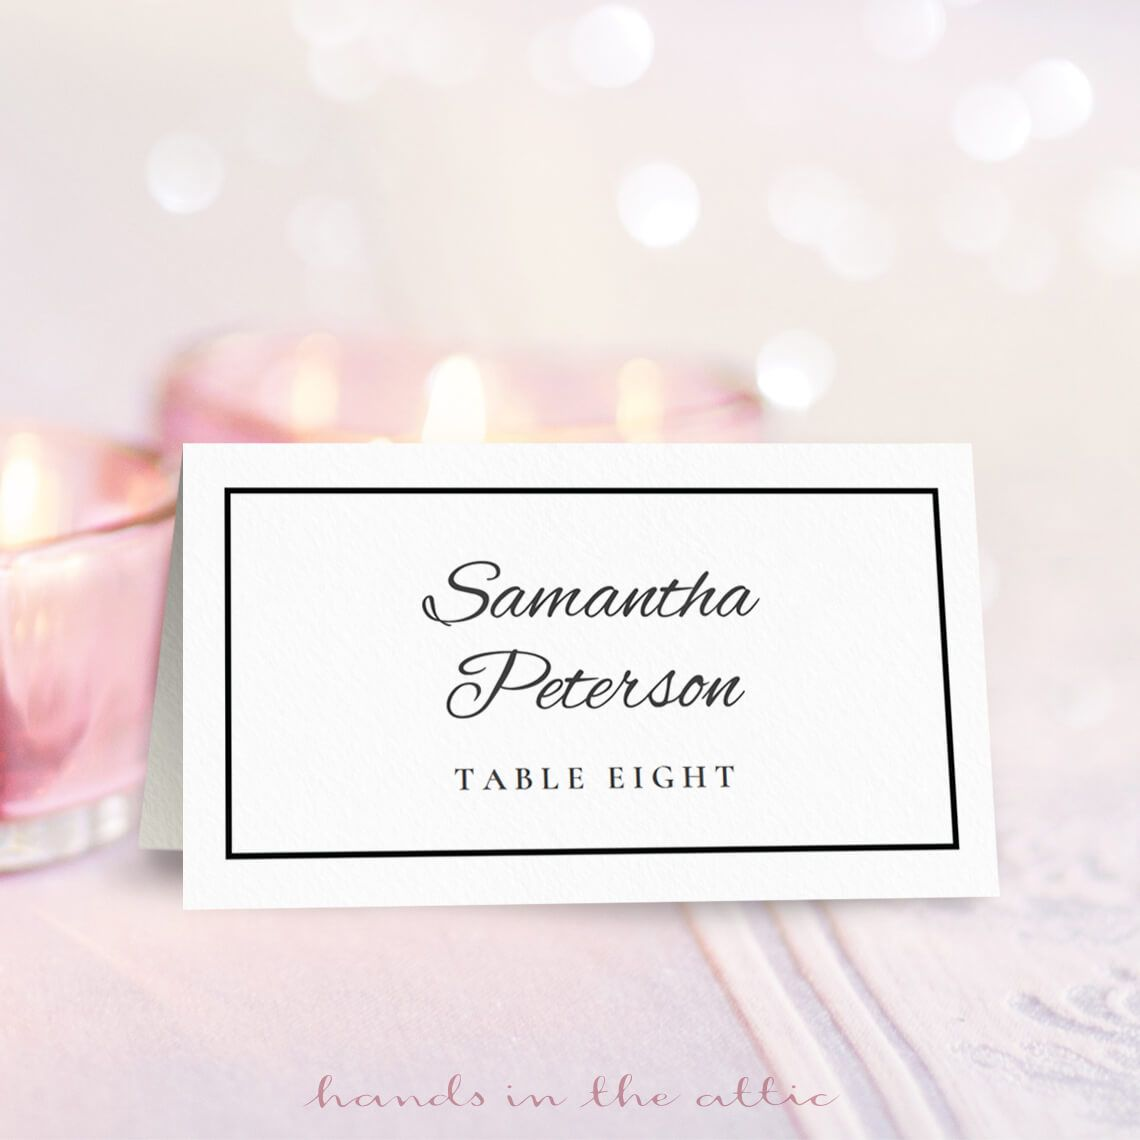 Wedding Place Card Template Free Download Hands In The Attic Free Place Card Template Card Templates Printable Place Card Template